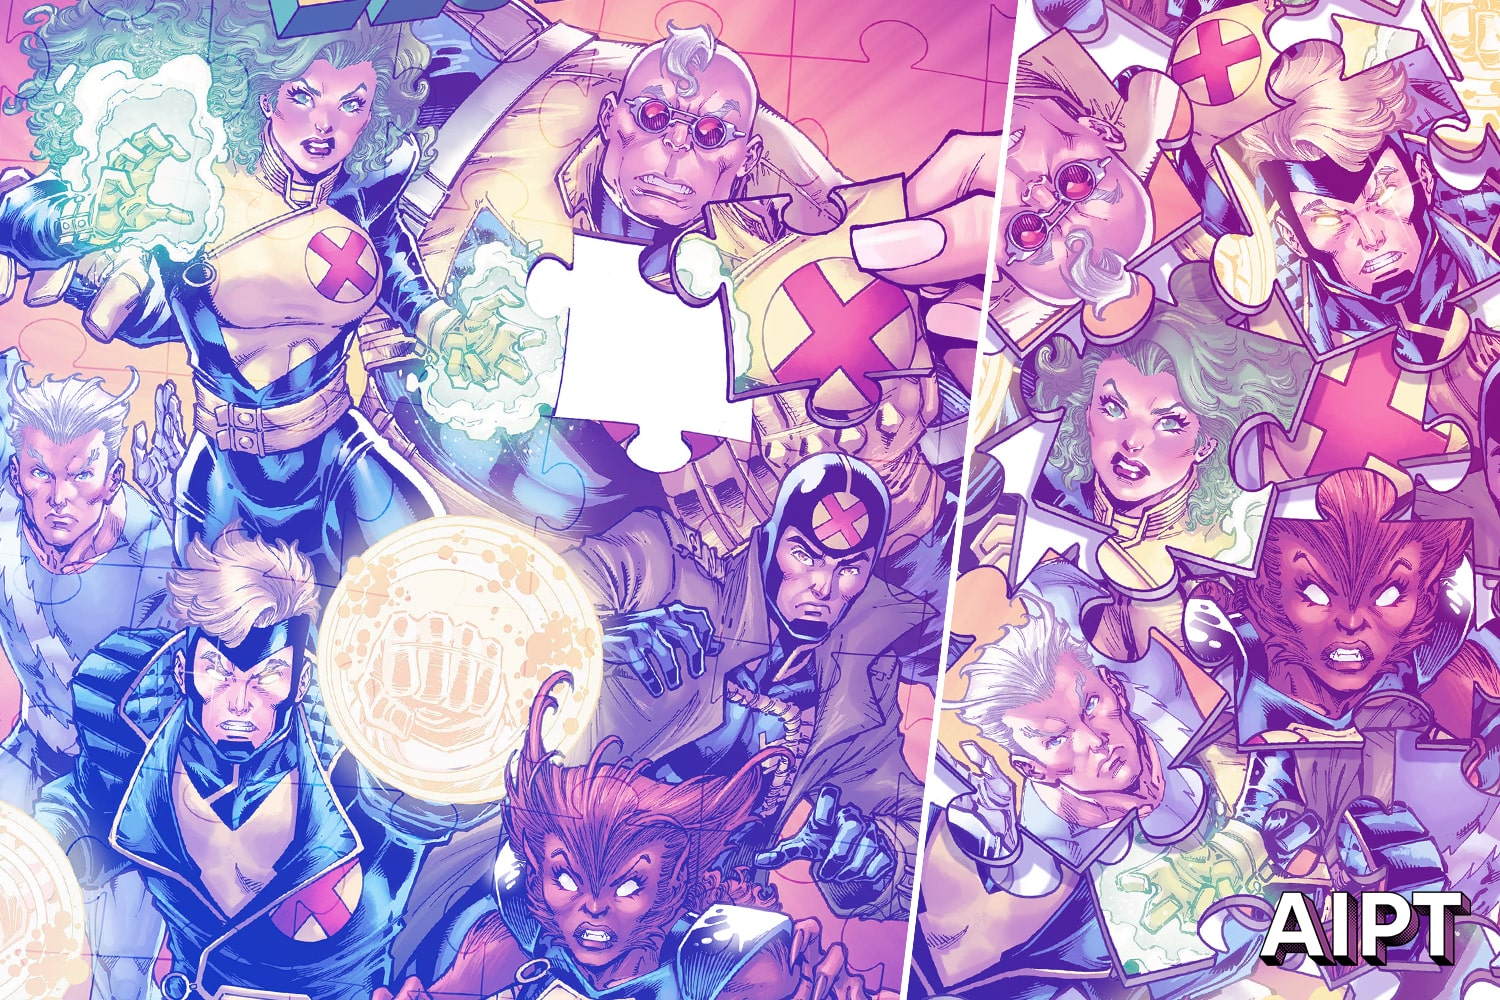 'X-Men Legends' #5 kicks off 'X-Factor' story by Peter David and Todd Nauck